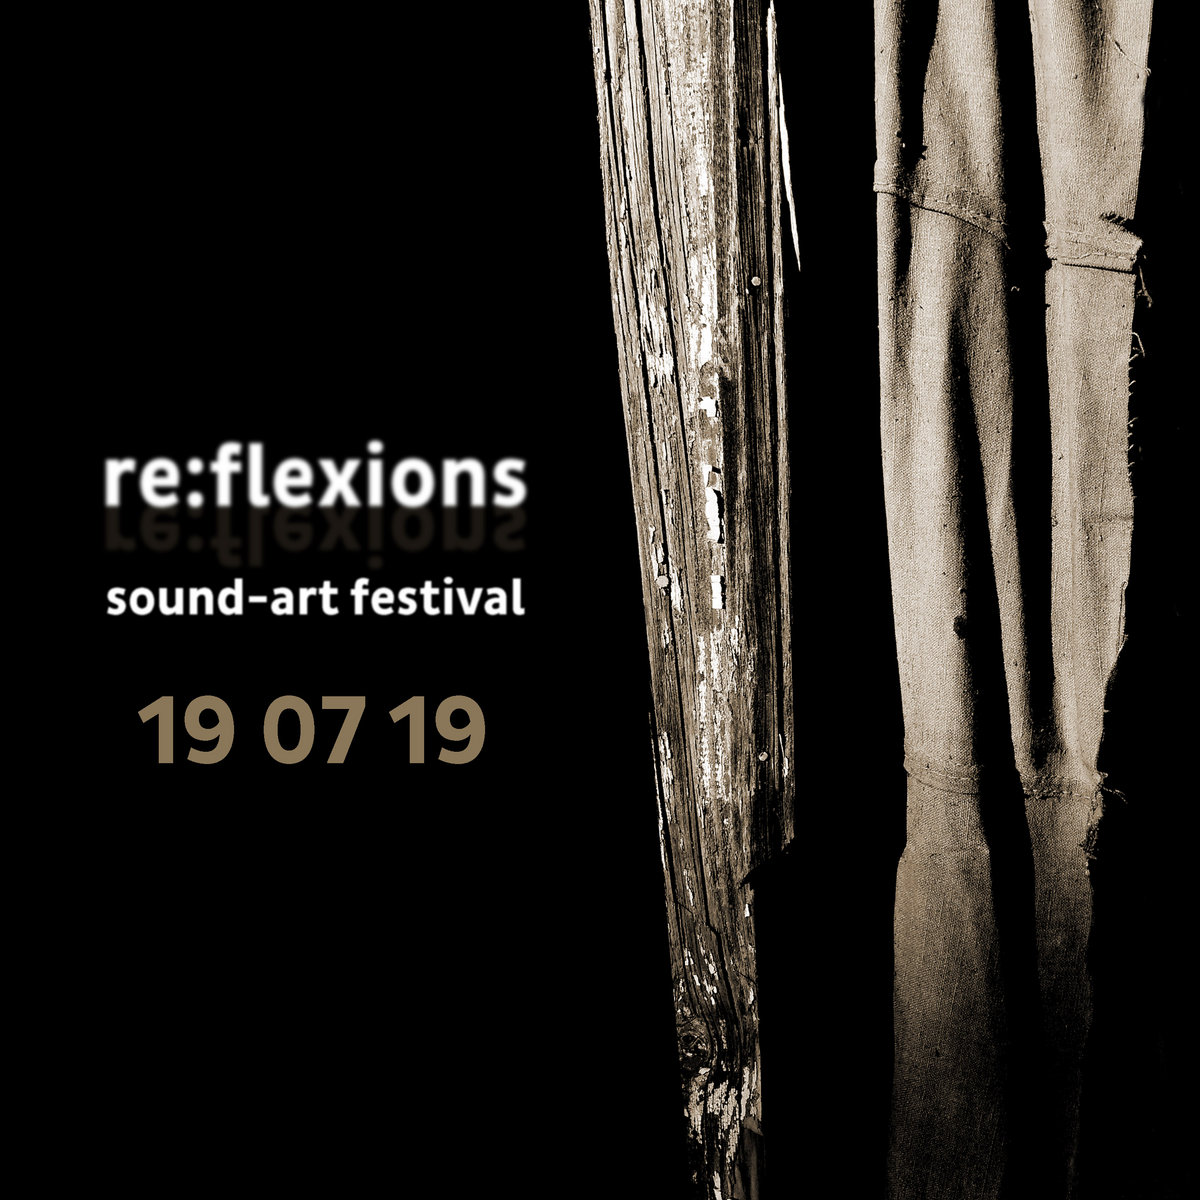 V.A. – re​:​flexions / sound​-​art festival 19 07 19